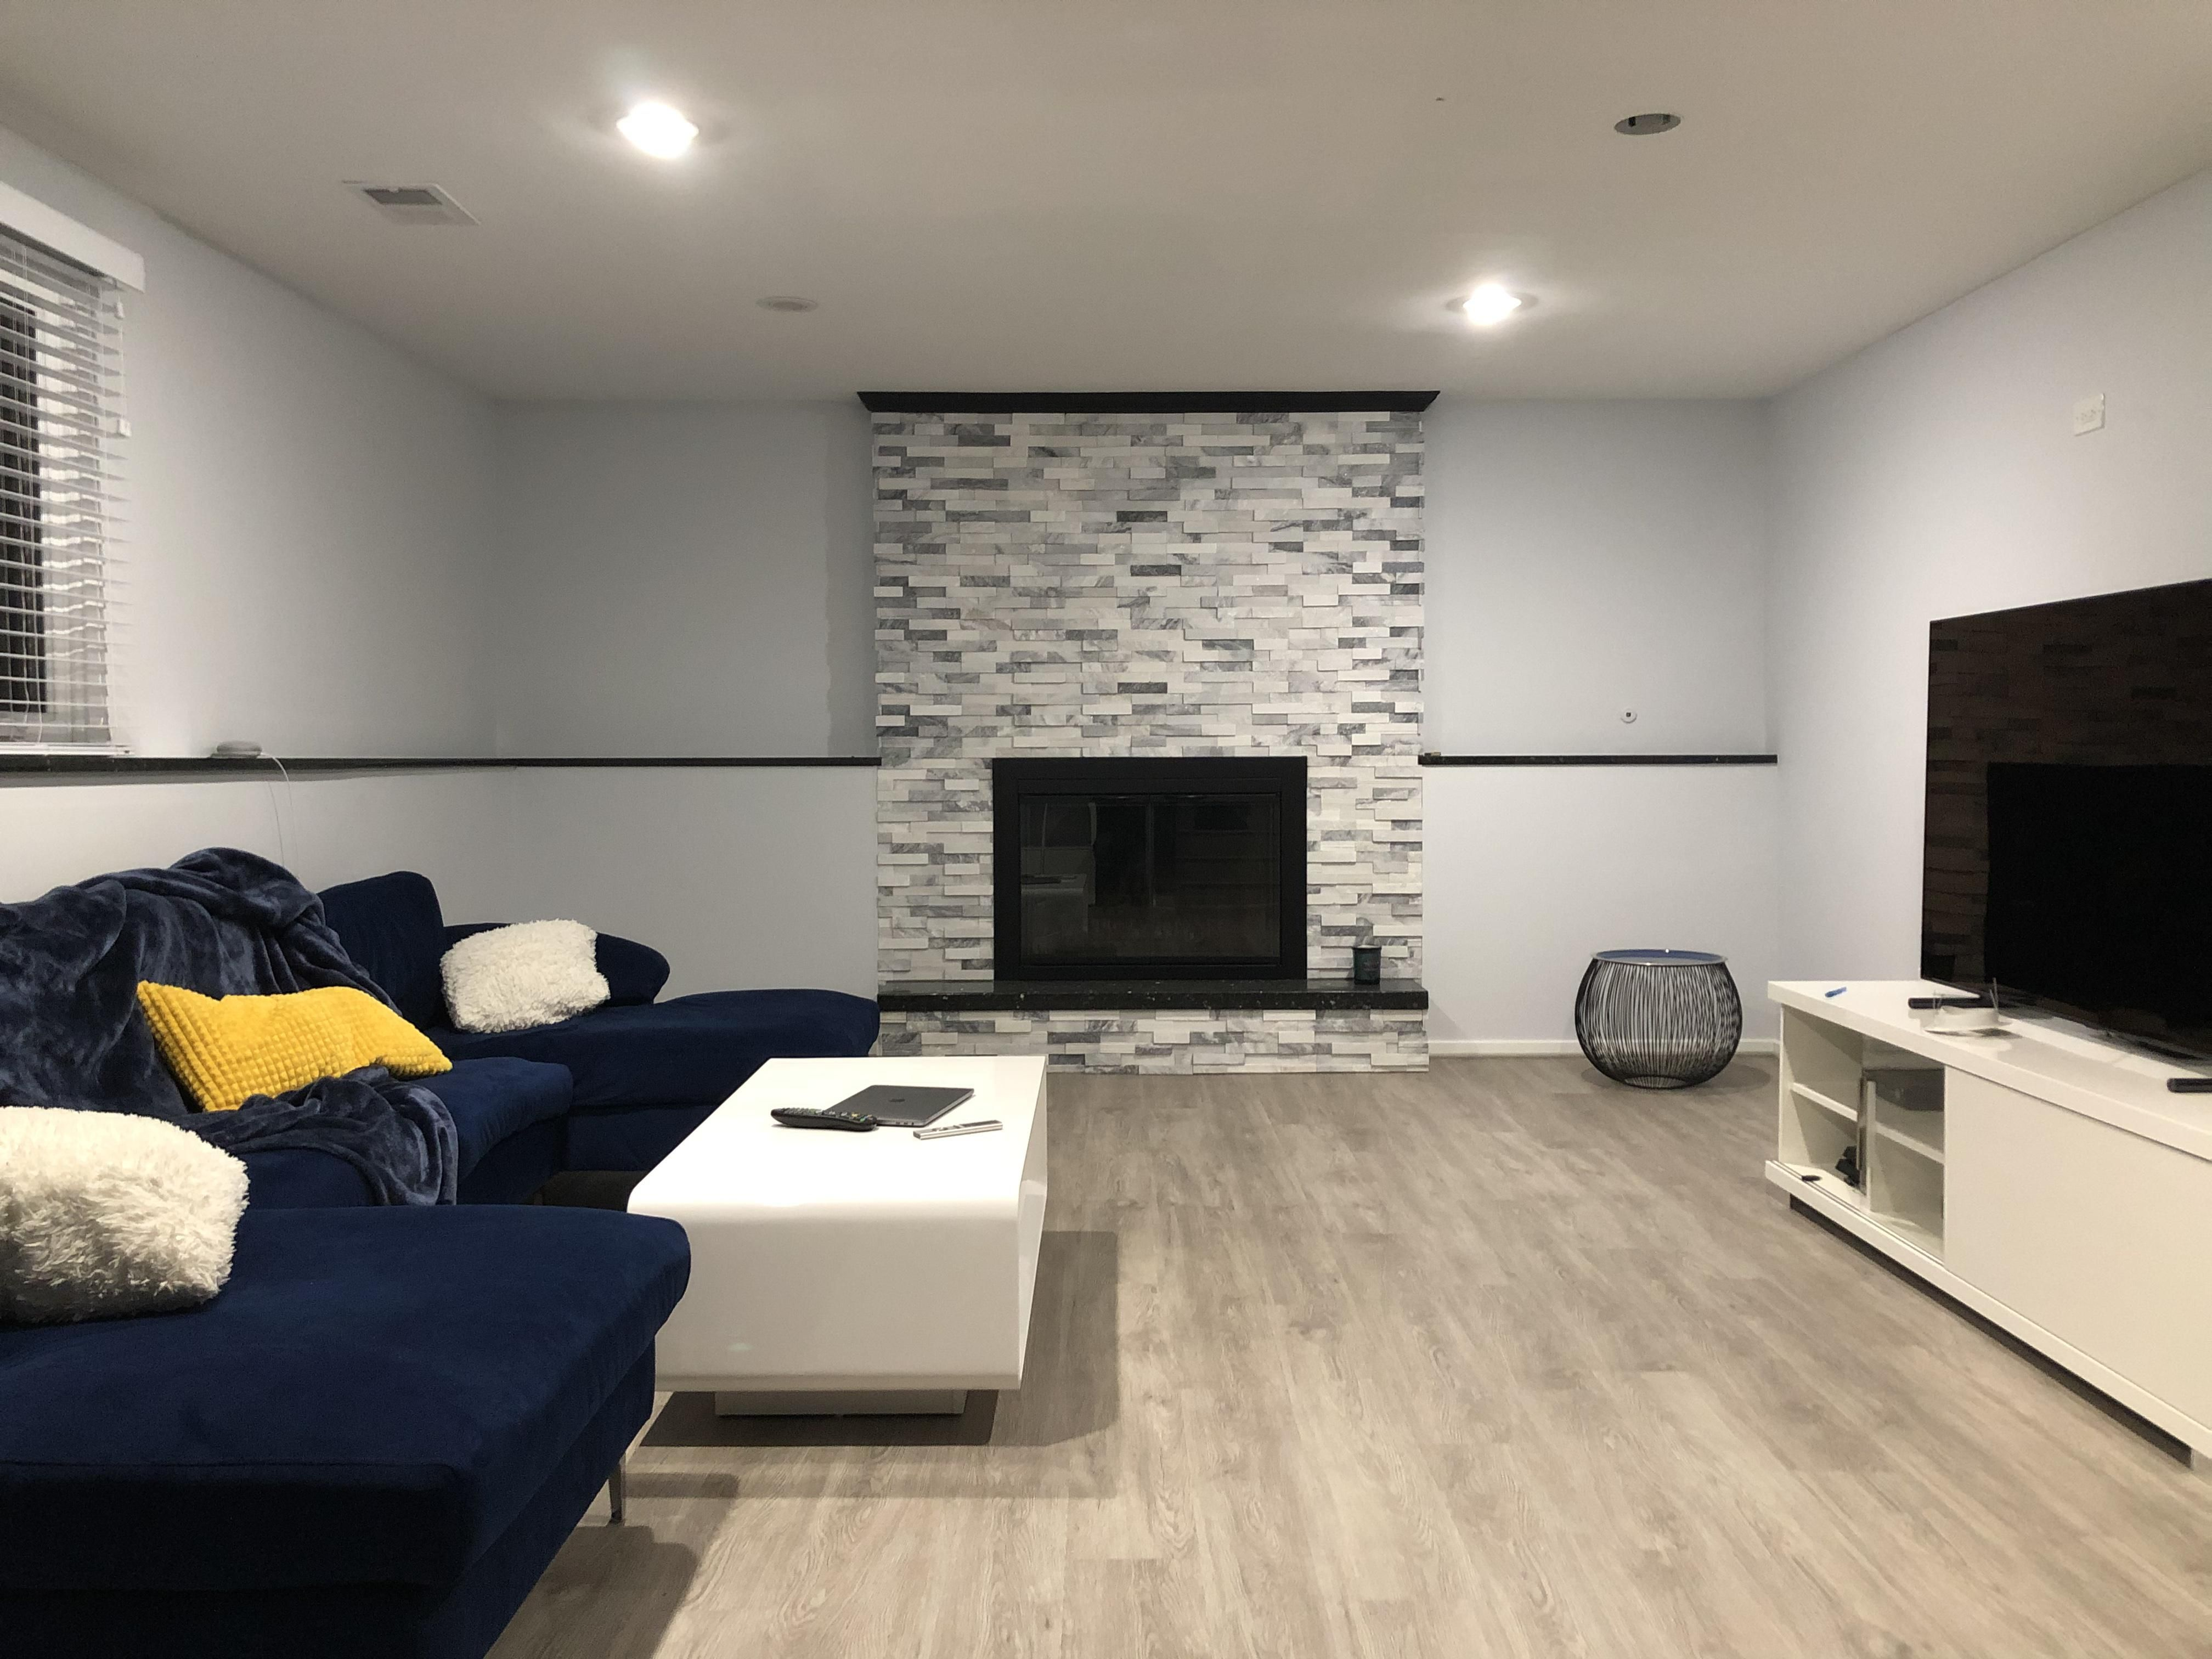 Need Some Help Decorating My Basement Living Area Interior Living Space Design Concept Furniture Home Decor Aesthetic Amaz Decor Home Modern House Design